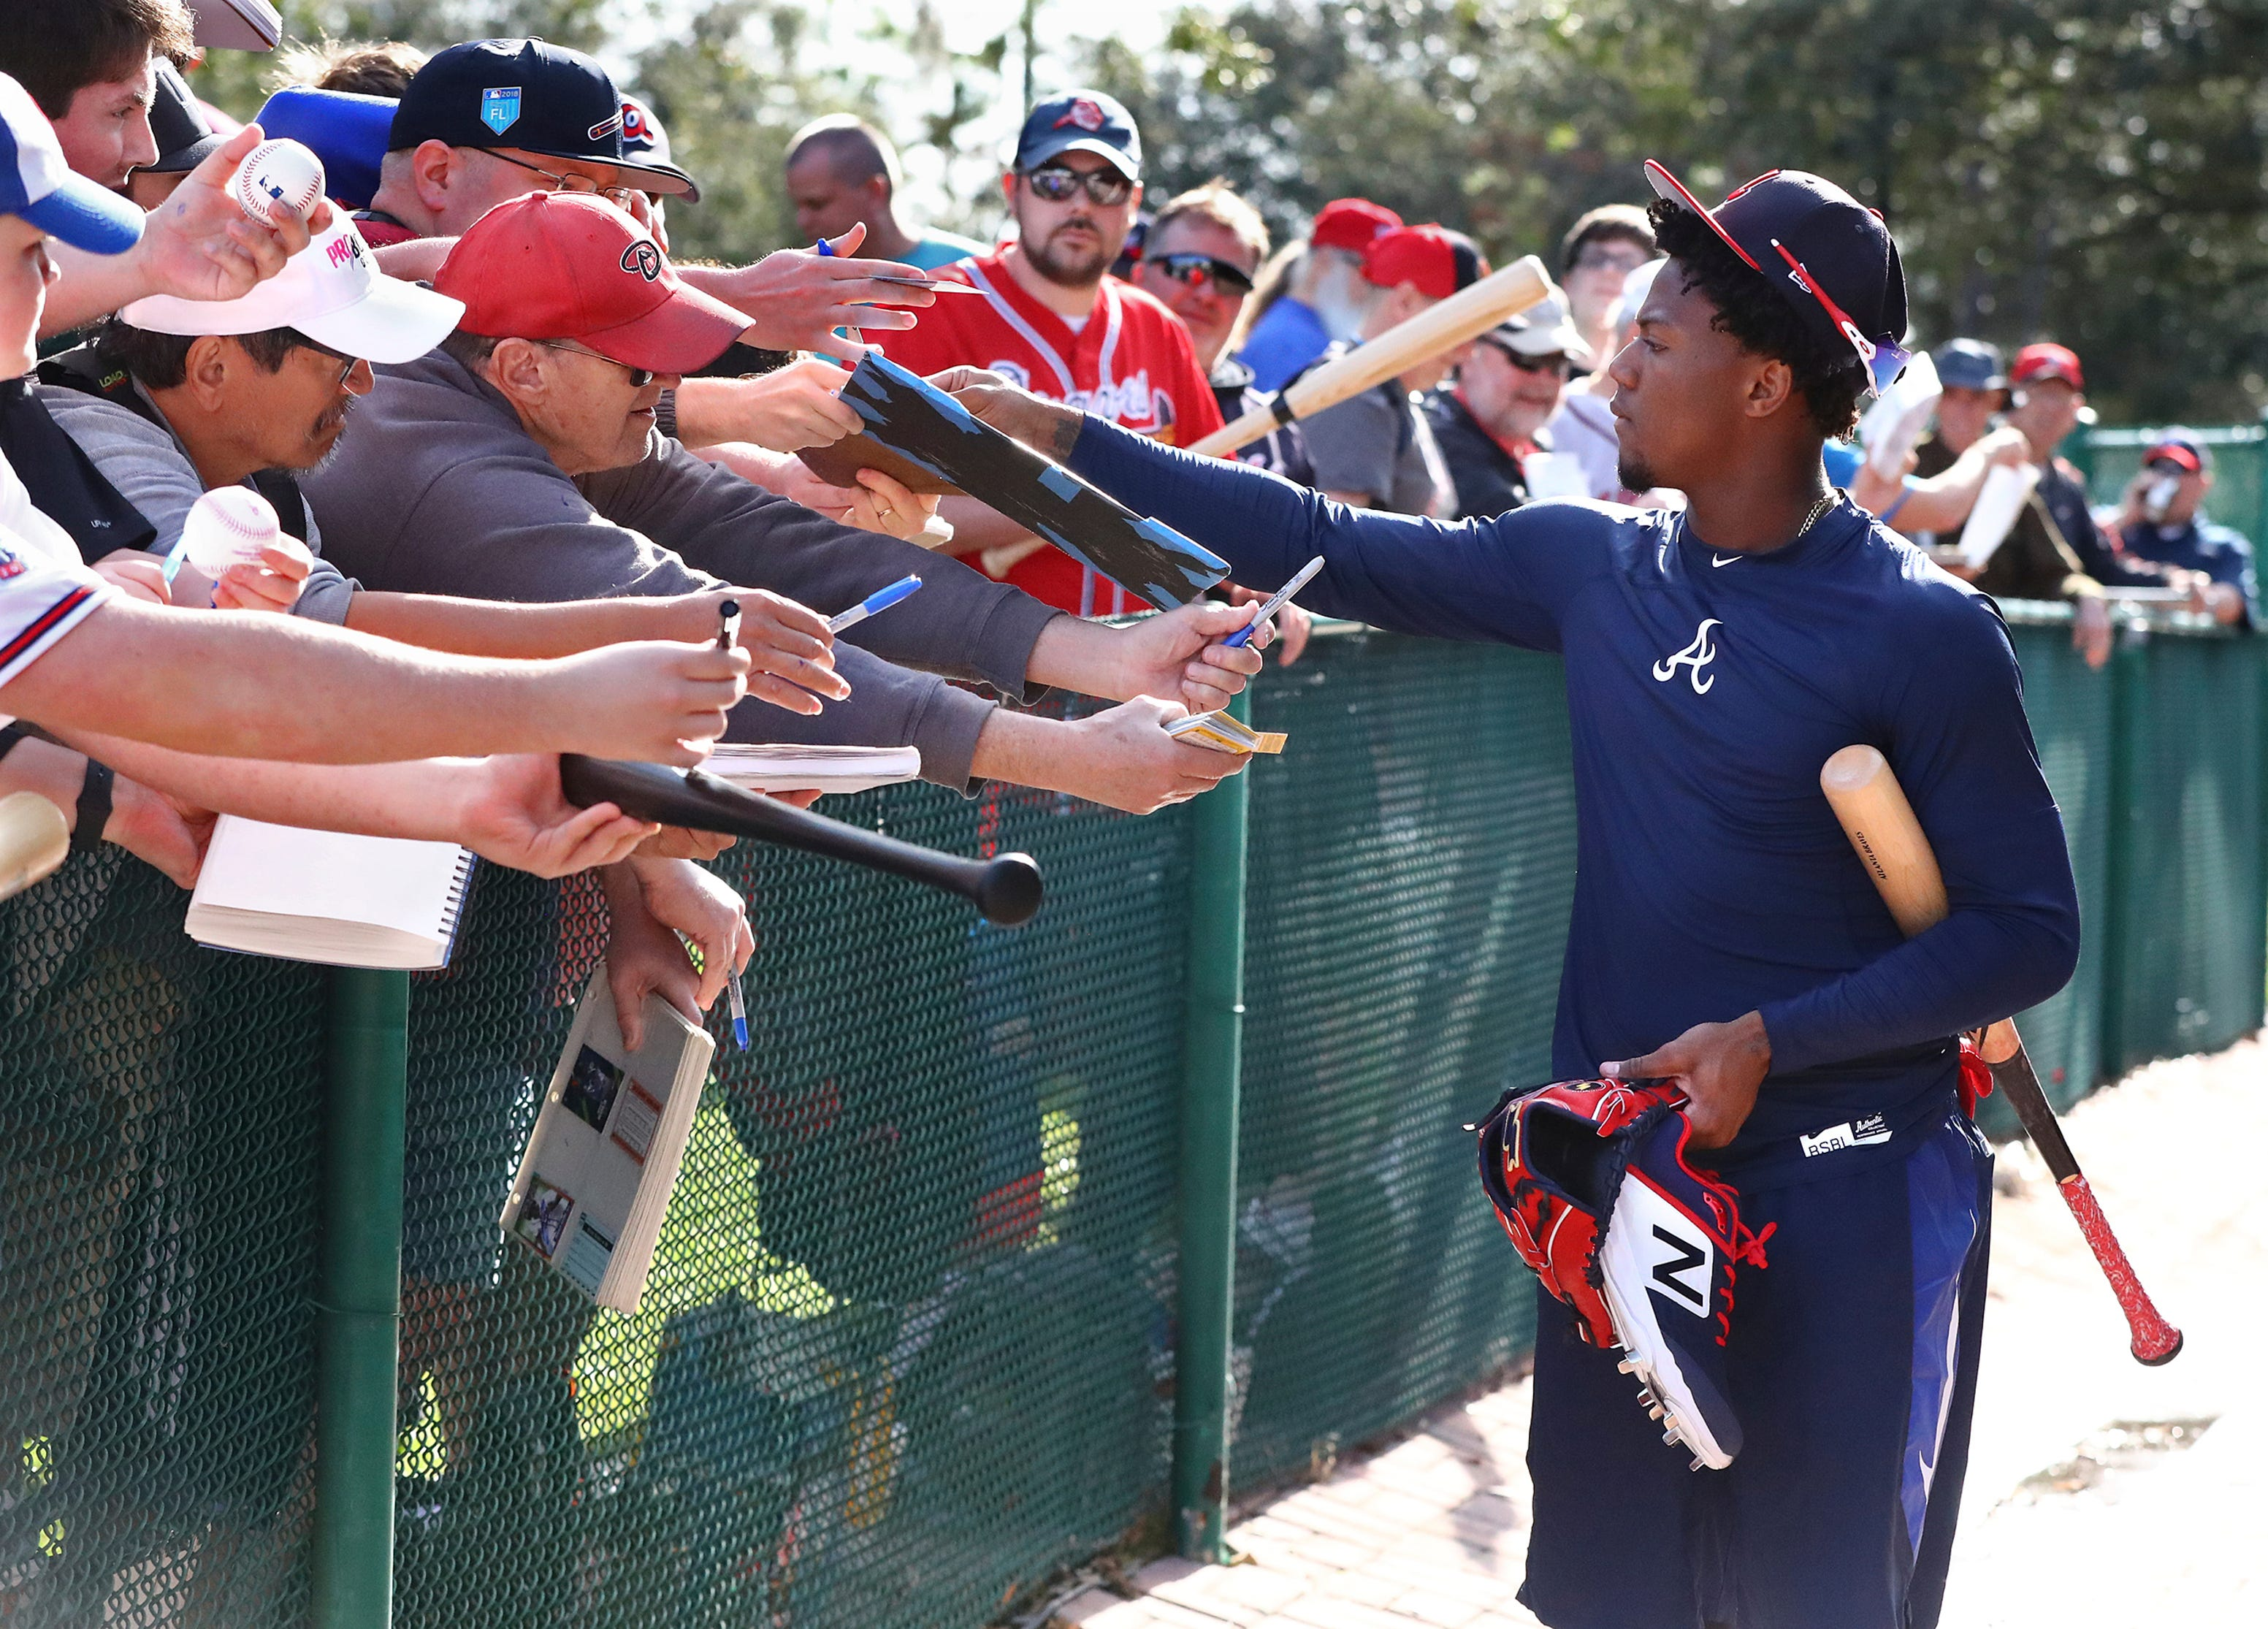 Braves expect Ronald Acuna Jr  to get even better as Atlanta battles  crowded division